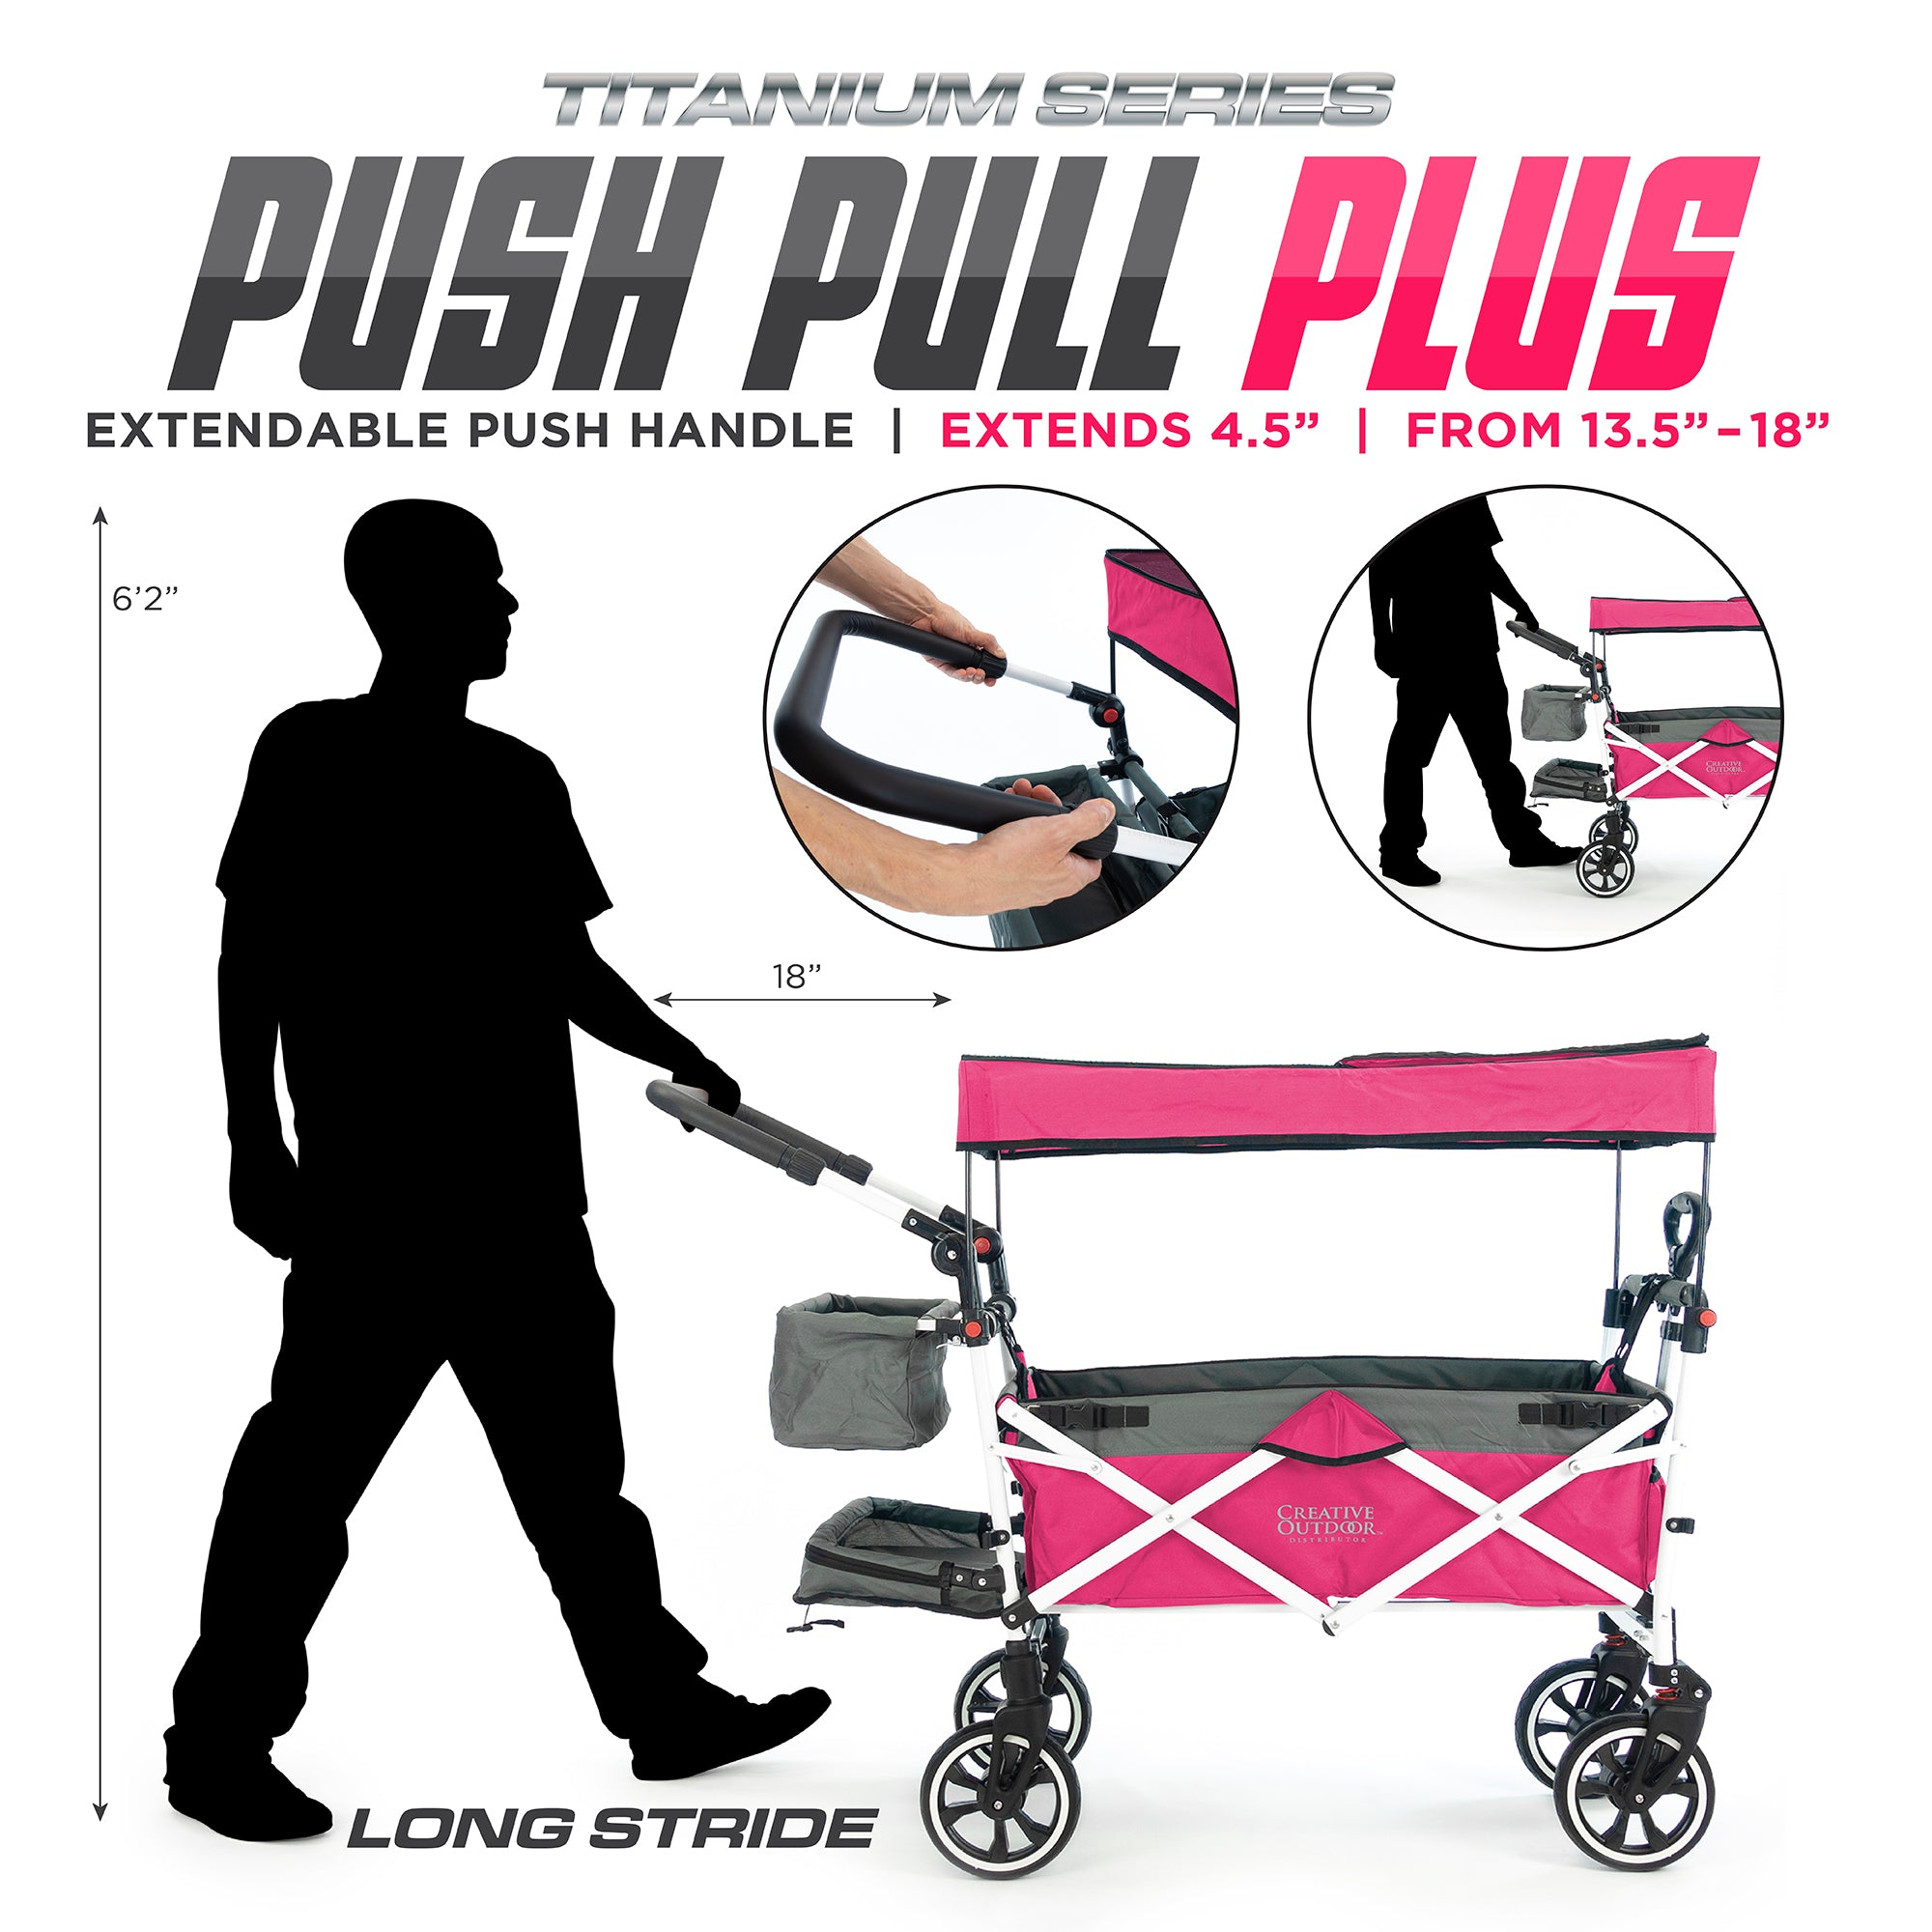 Push Pull Folding Stroller Wagon Titanium Series Pink PLUS Extendable Handle